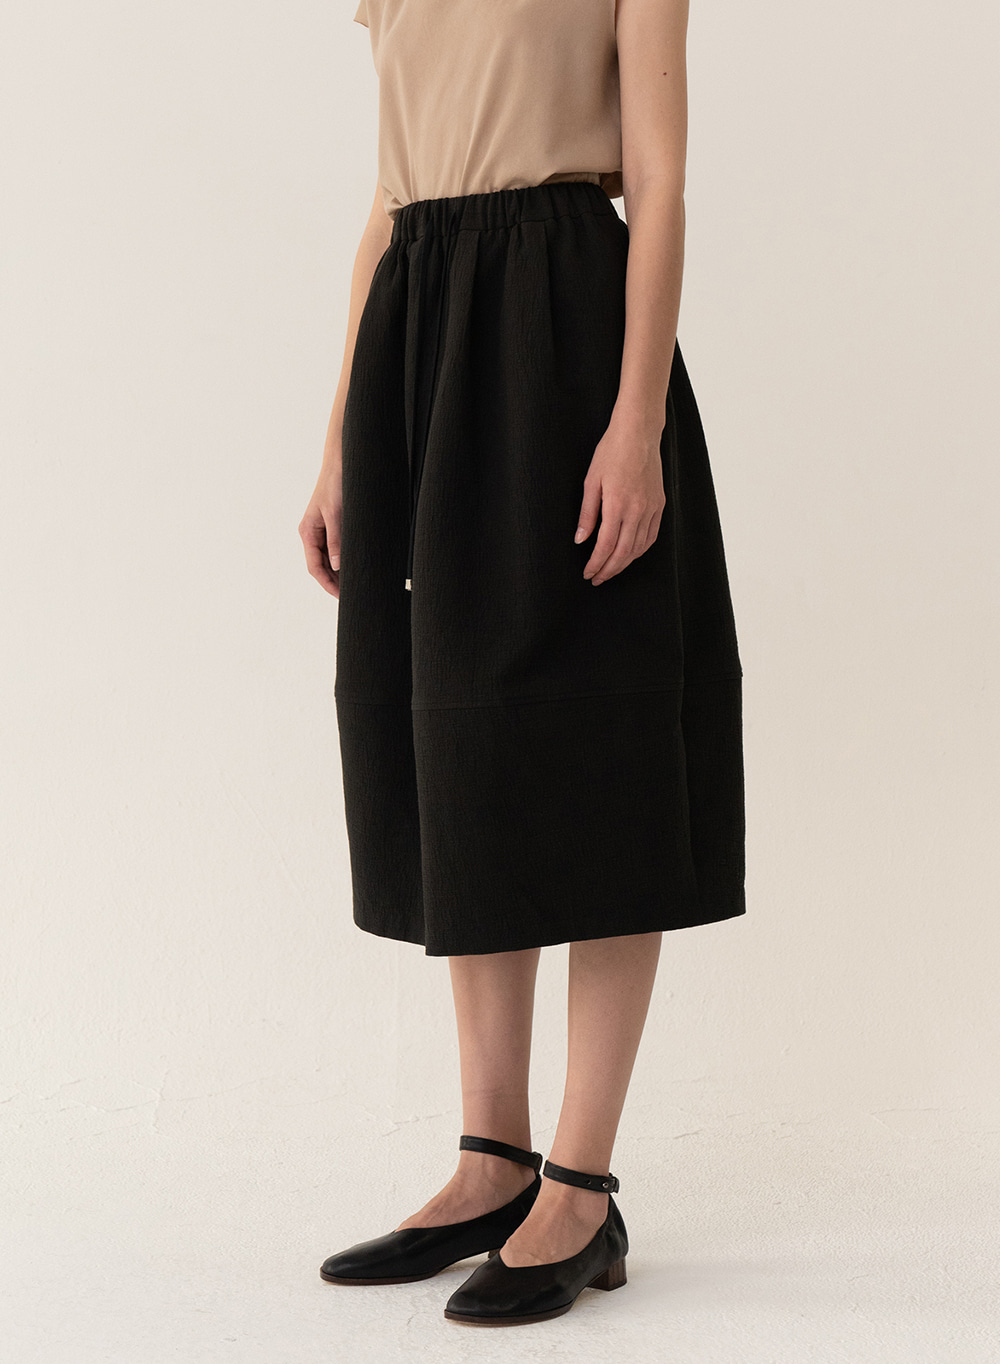 [ESSENTIAL] Baggy Skirt Black